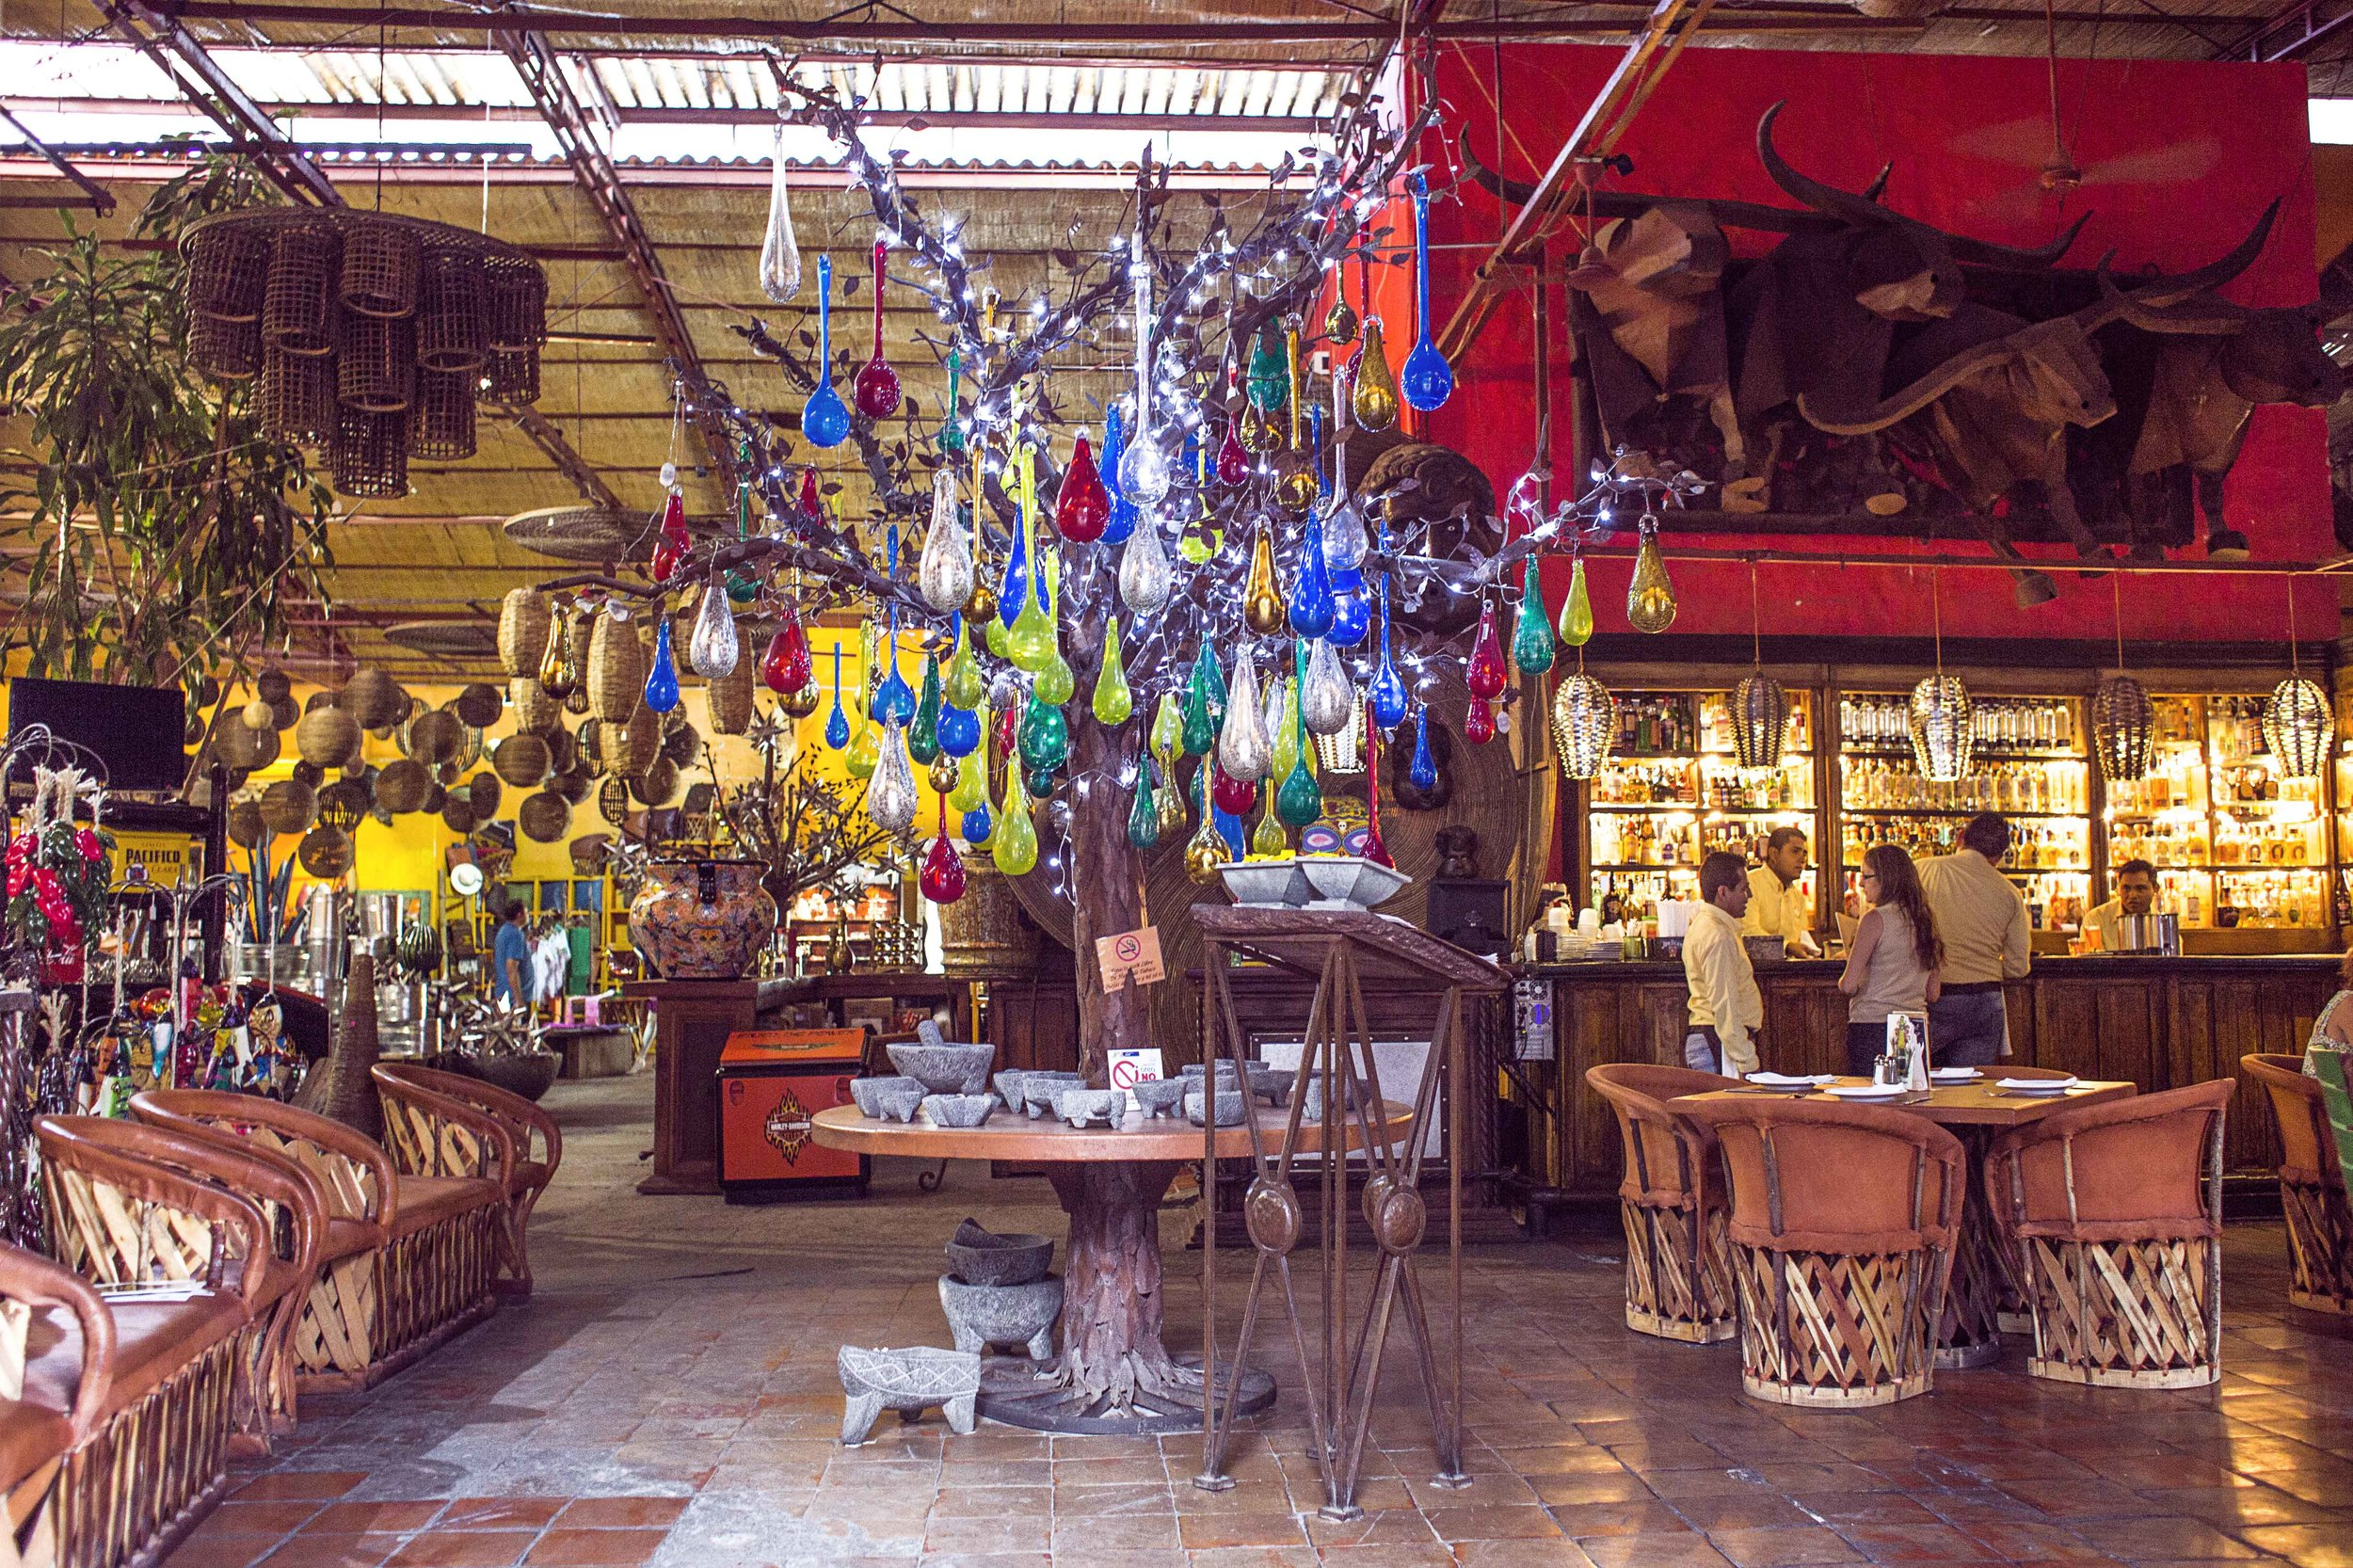 Day 68 - Tlaquepaque, Jalisco, Mexico   Next to Guadalajara is Tlaquepaque known for its art, pottery and glass. Adorable stores are everywhere so shoppers beware, you will leave needing a second suitcase to take back home.